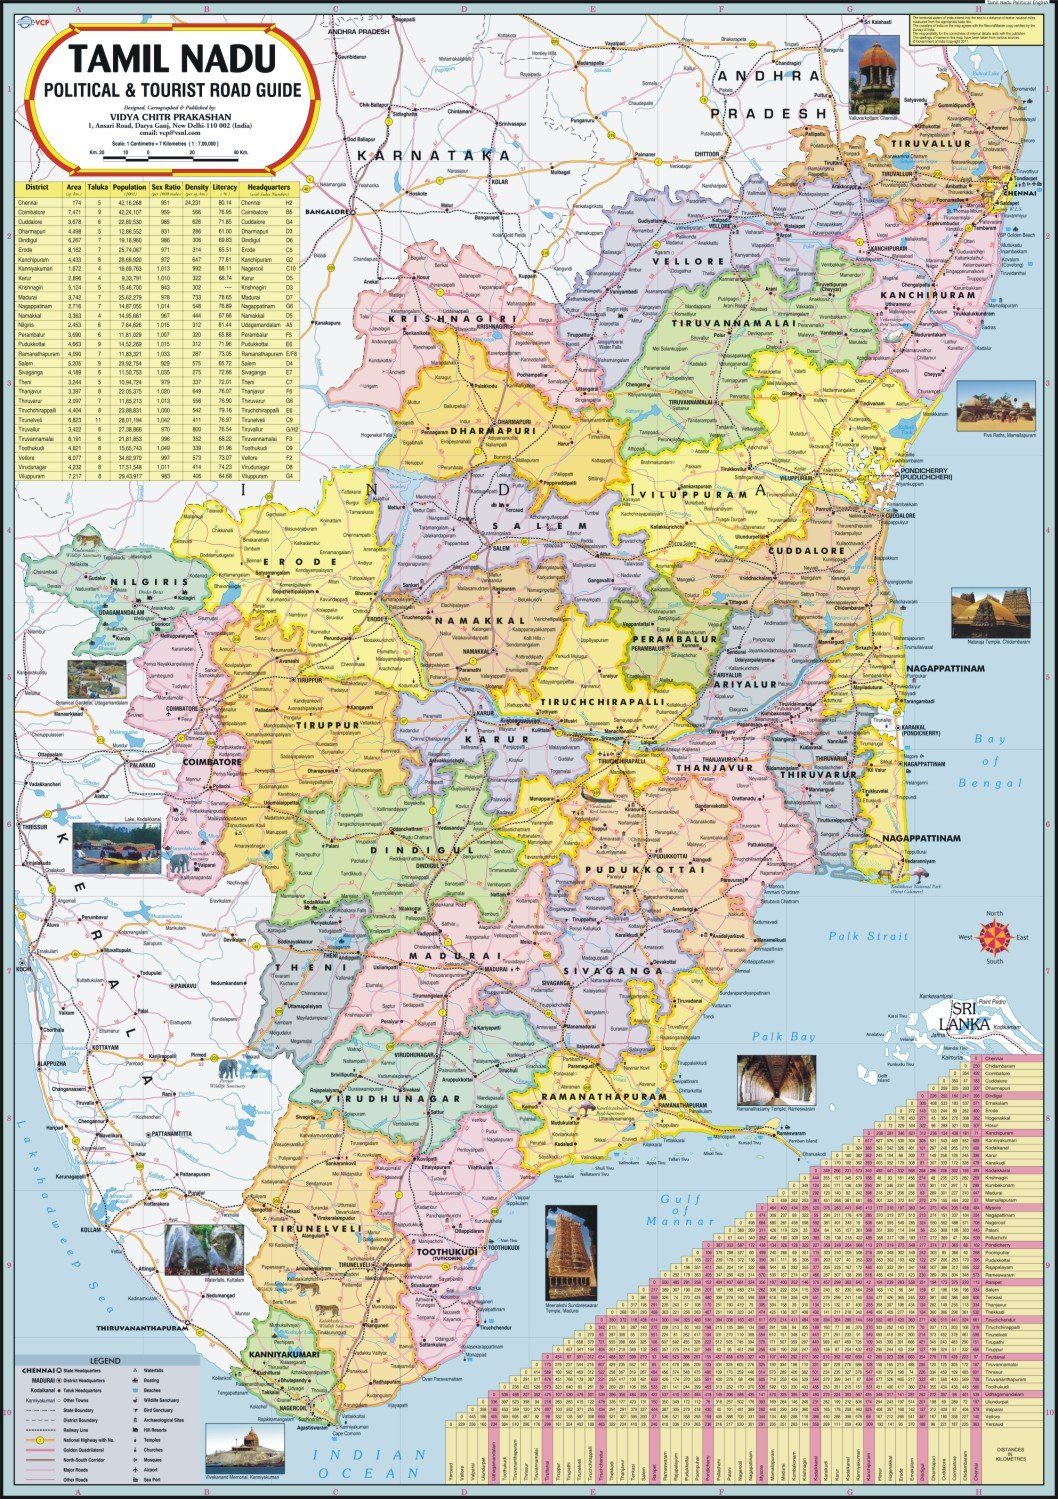 Buy Tamil Nadu Map Book Online at Low Prices in India ...